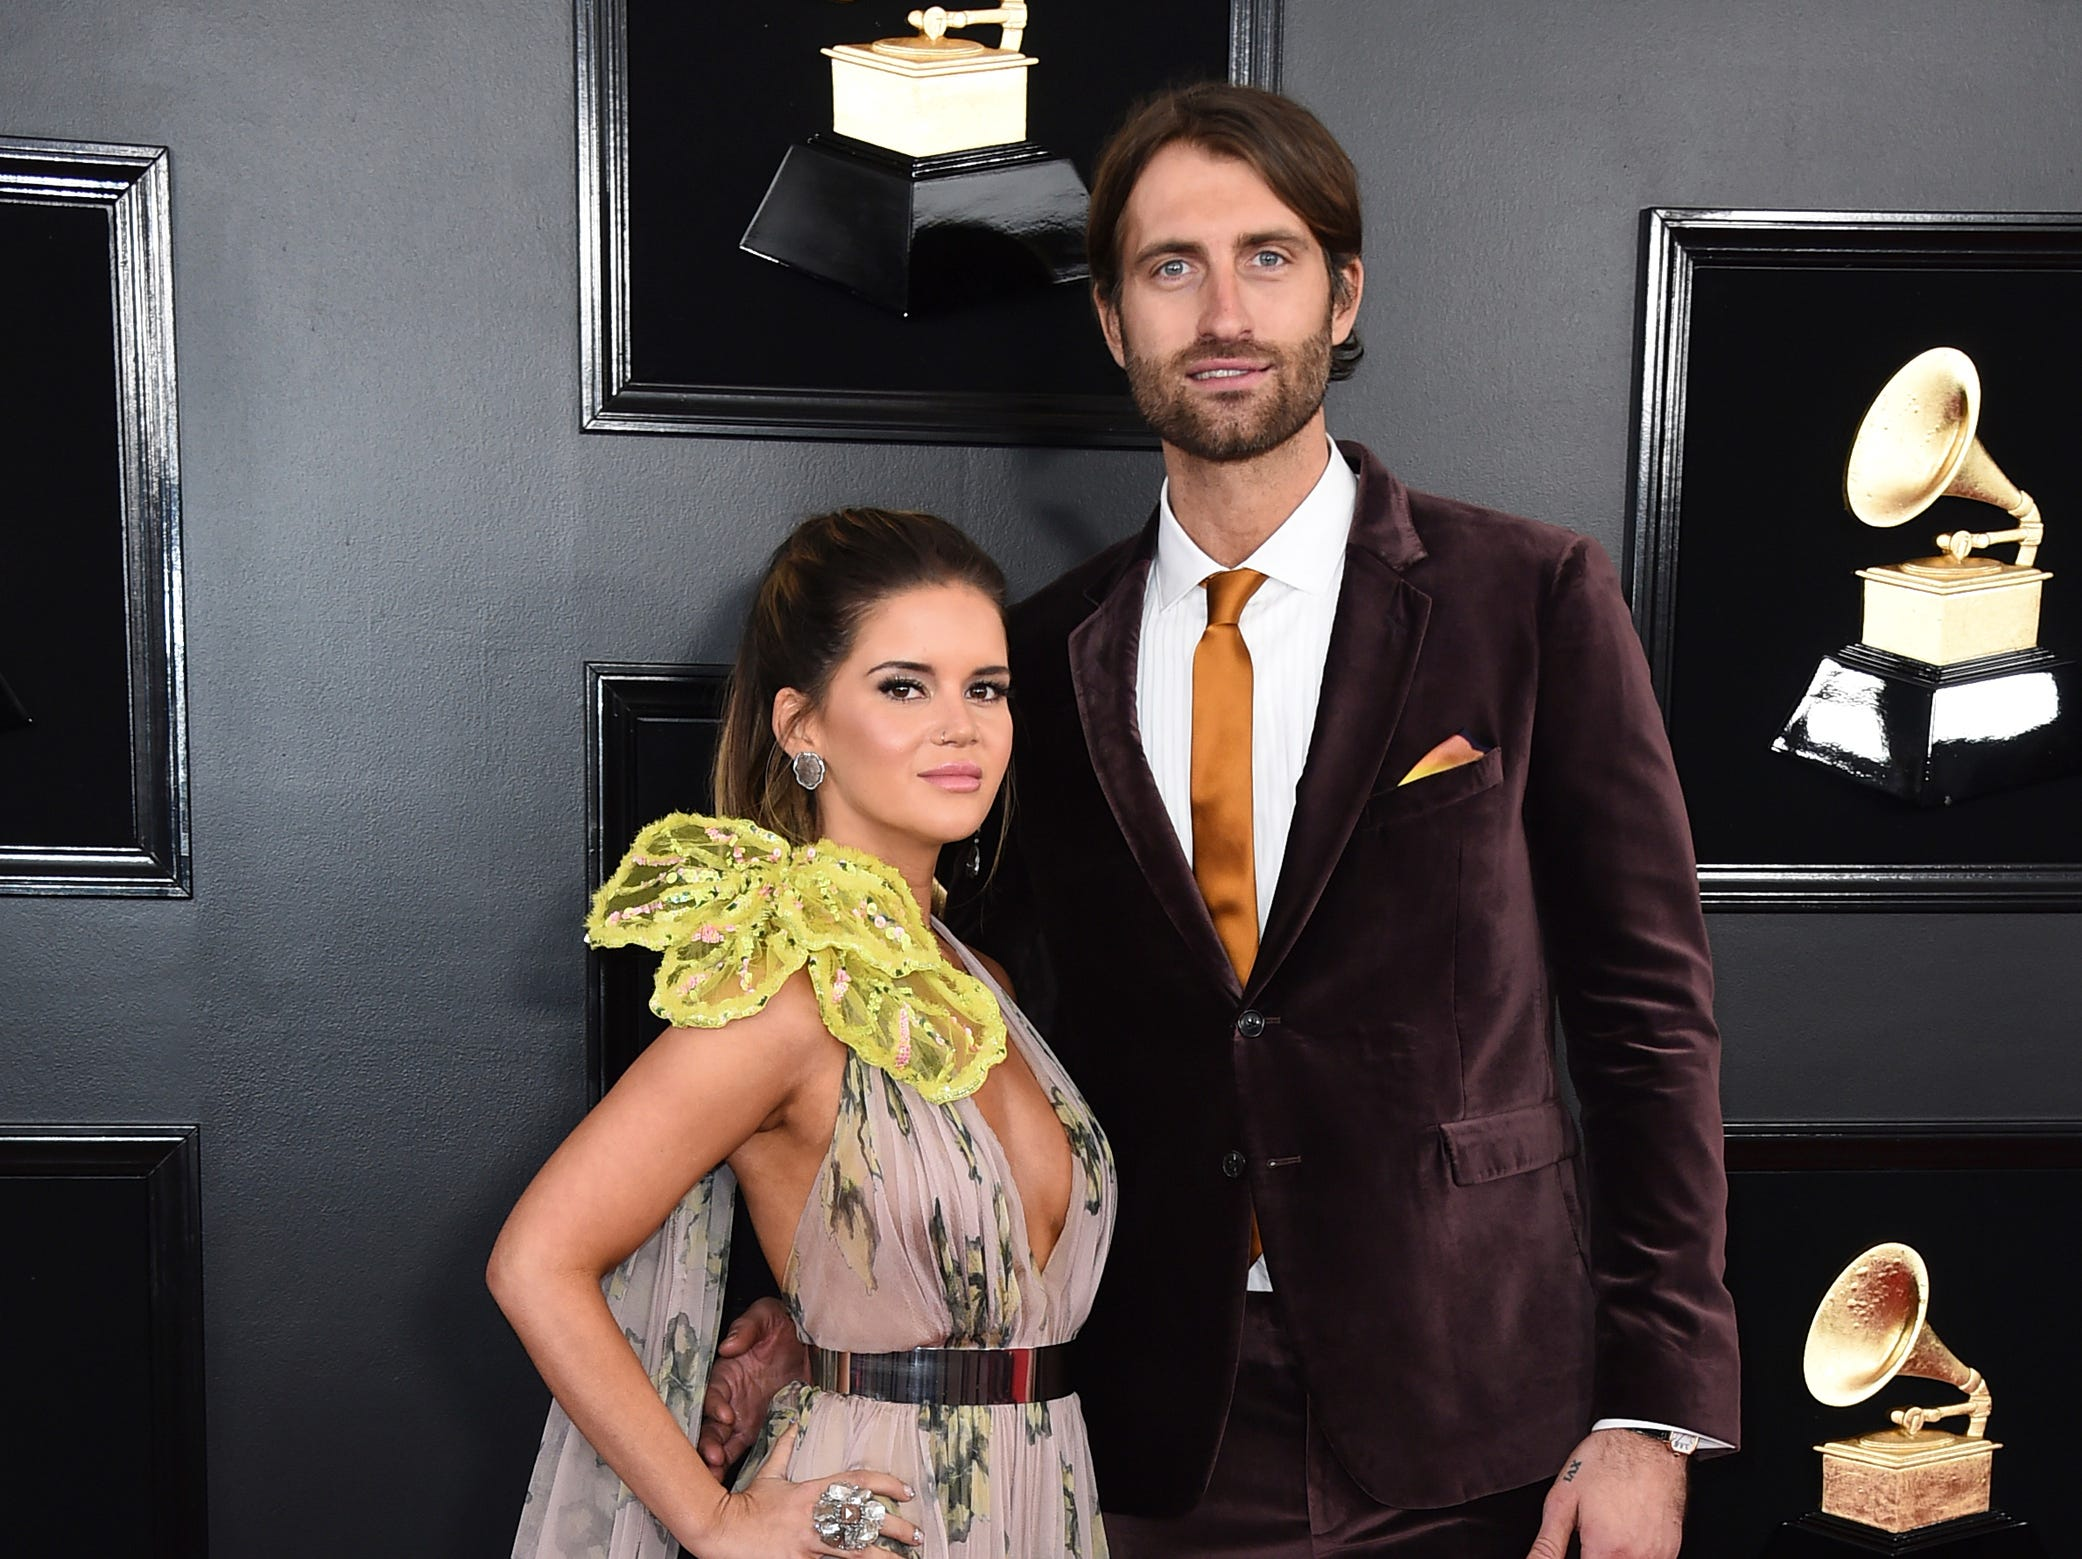 Maren Morris, left, and Ryan Hurd arrive at the 61st annual Grammy Awards.